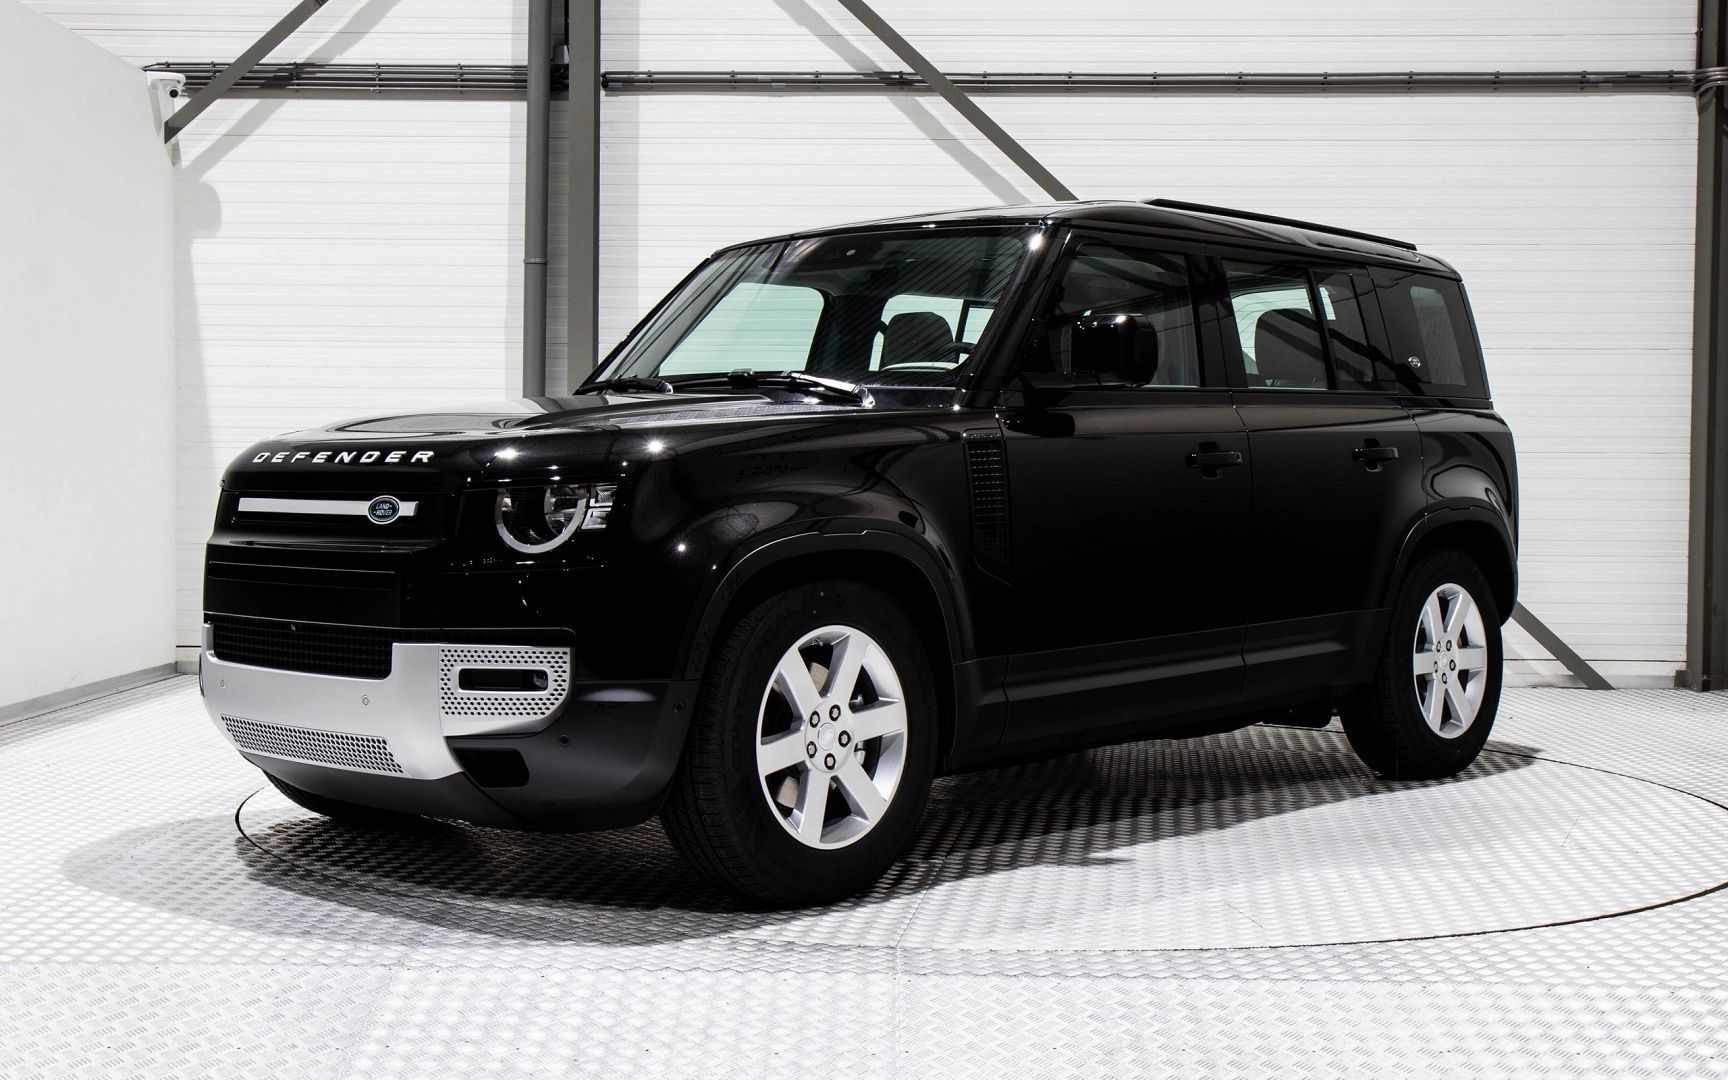 LAND-ROVER - DEFENDER - 110 2.0 D240 FIRST EDITION n° 3